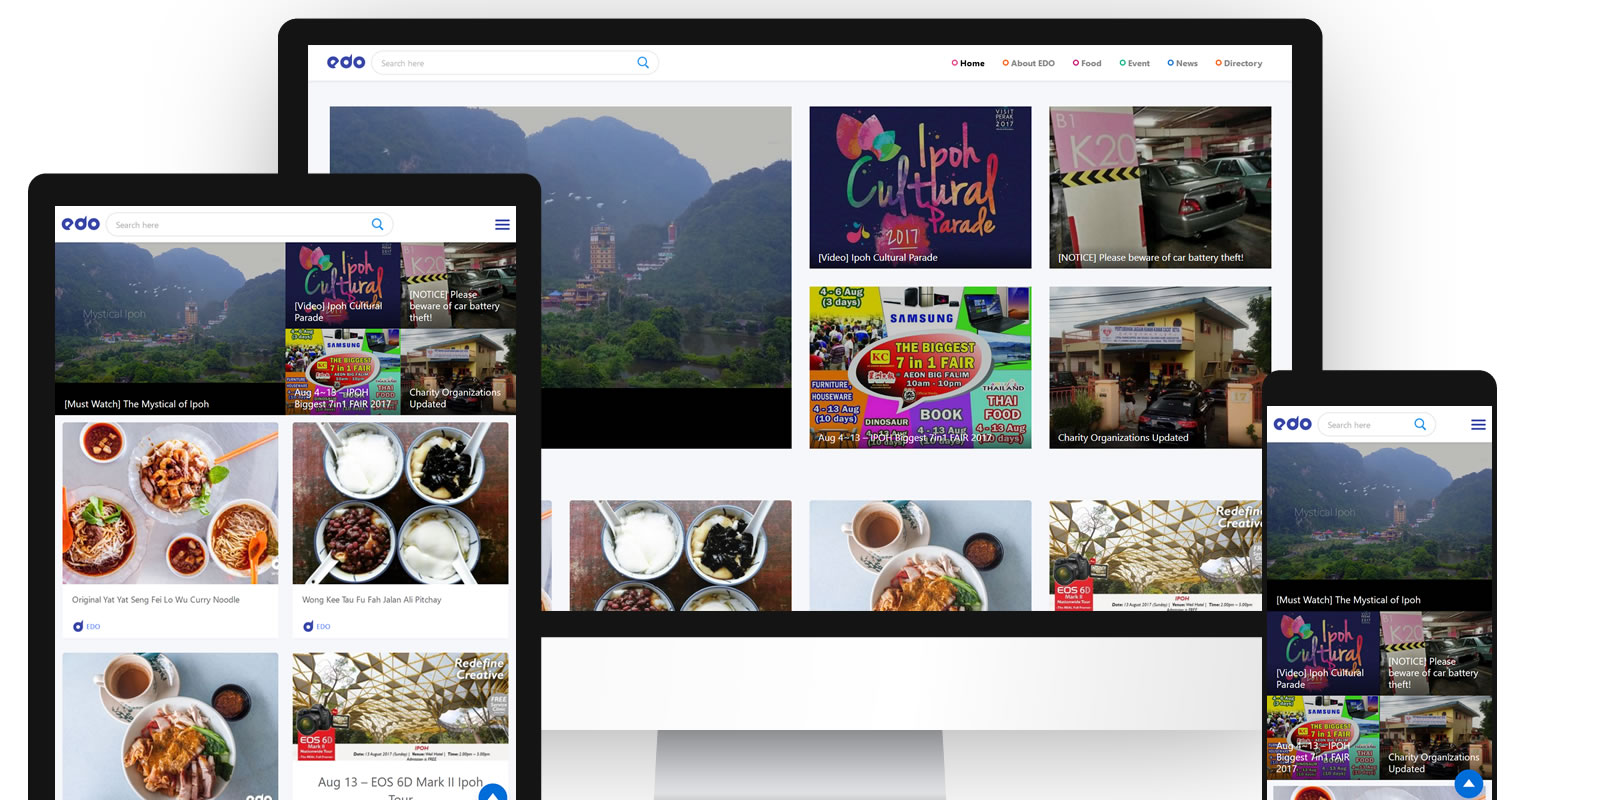 ipoh food directory, wordpress directory theme